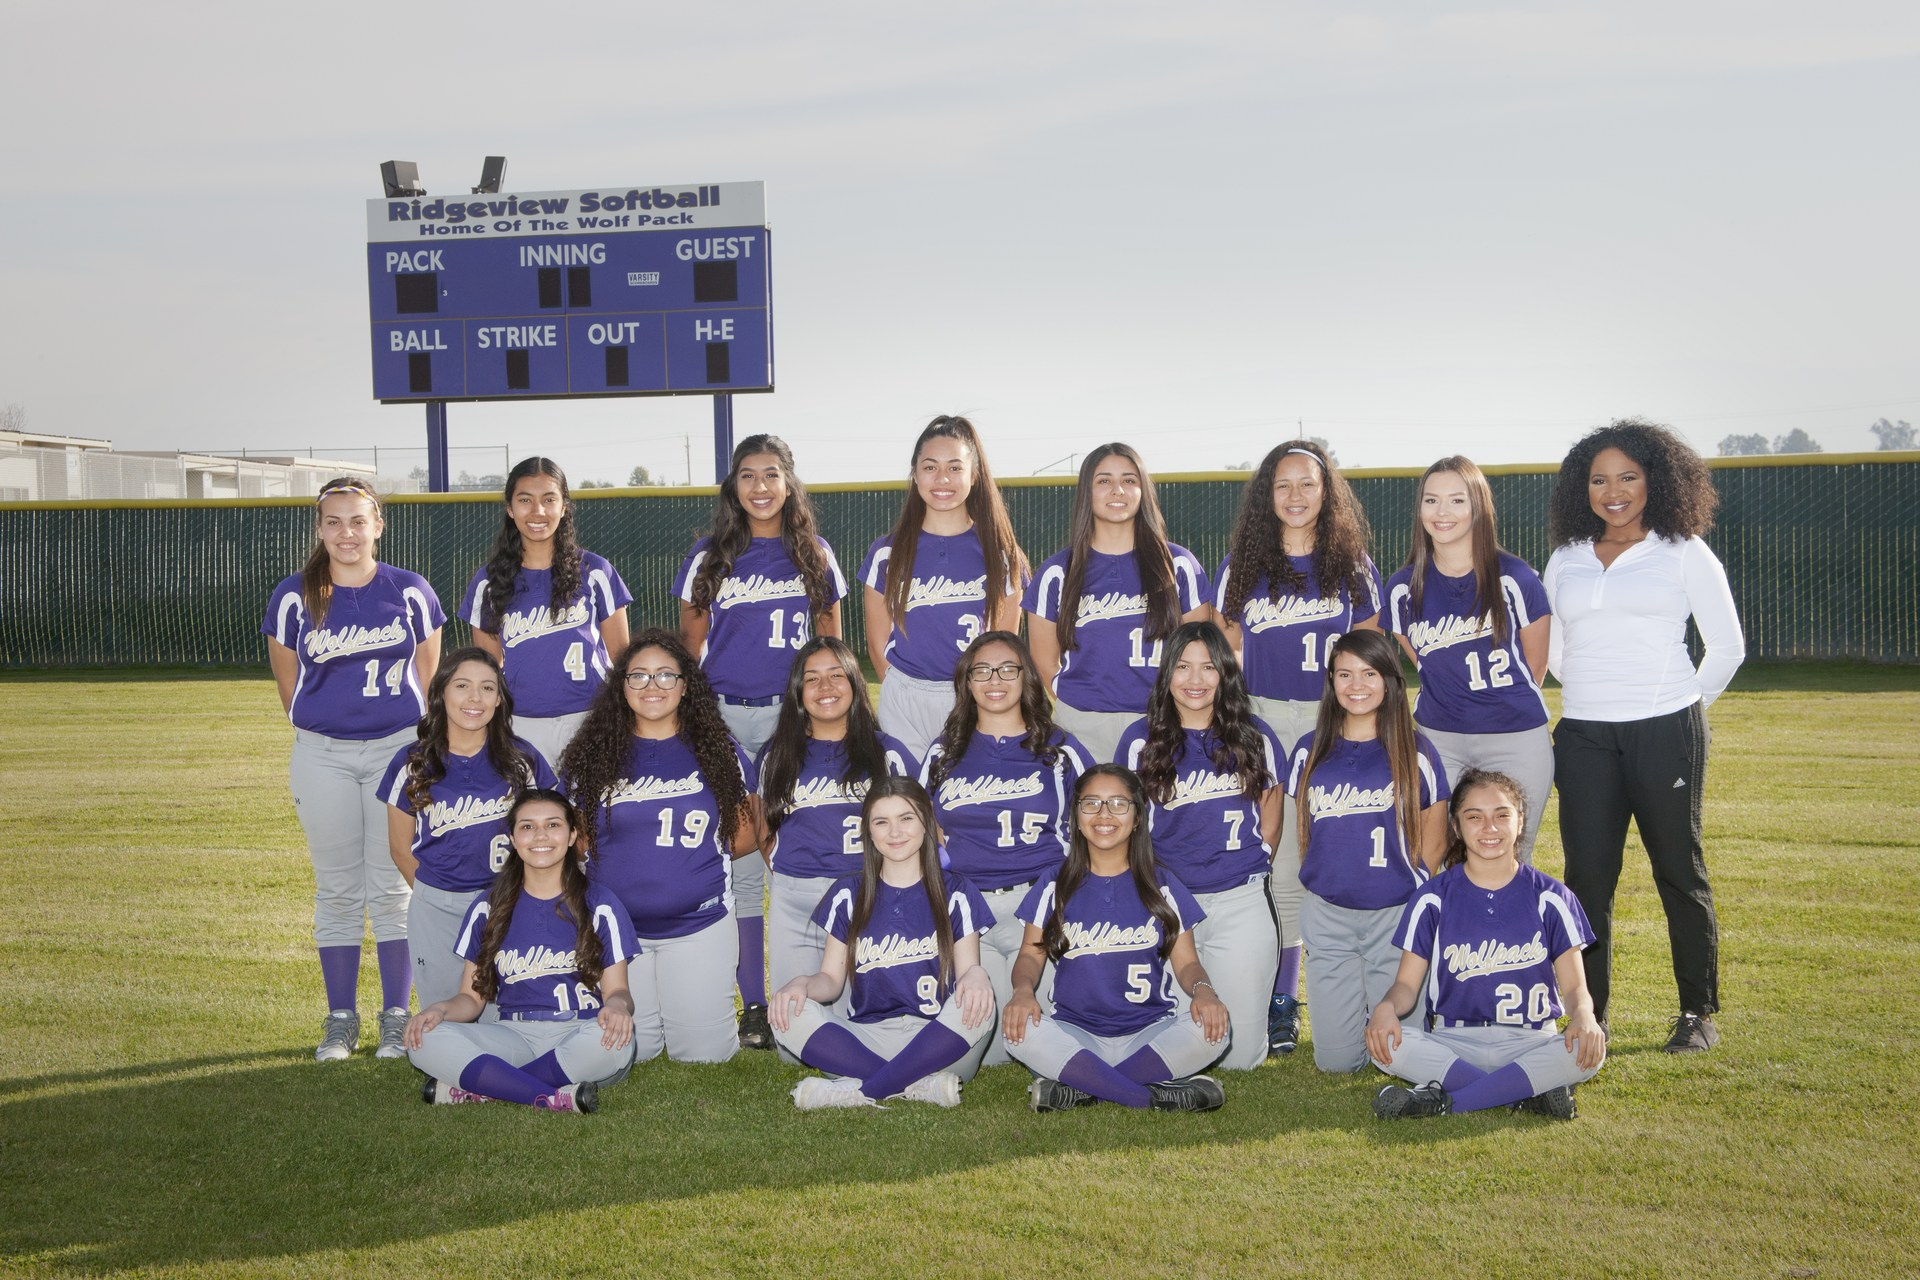 RHS FS Softball